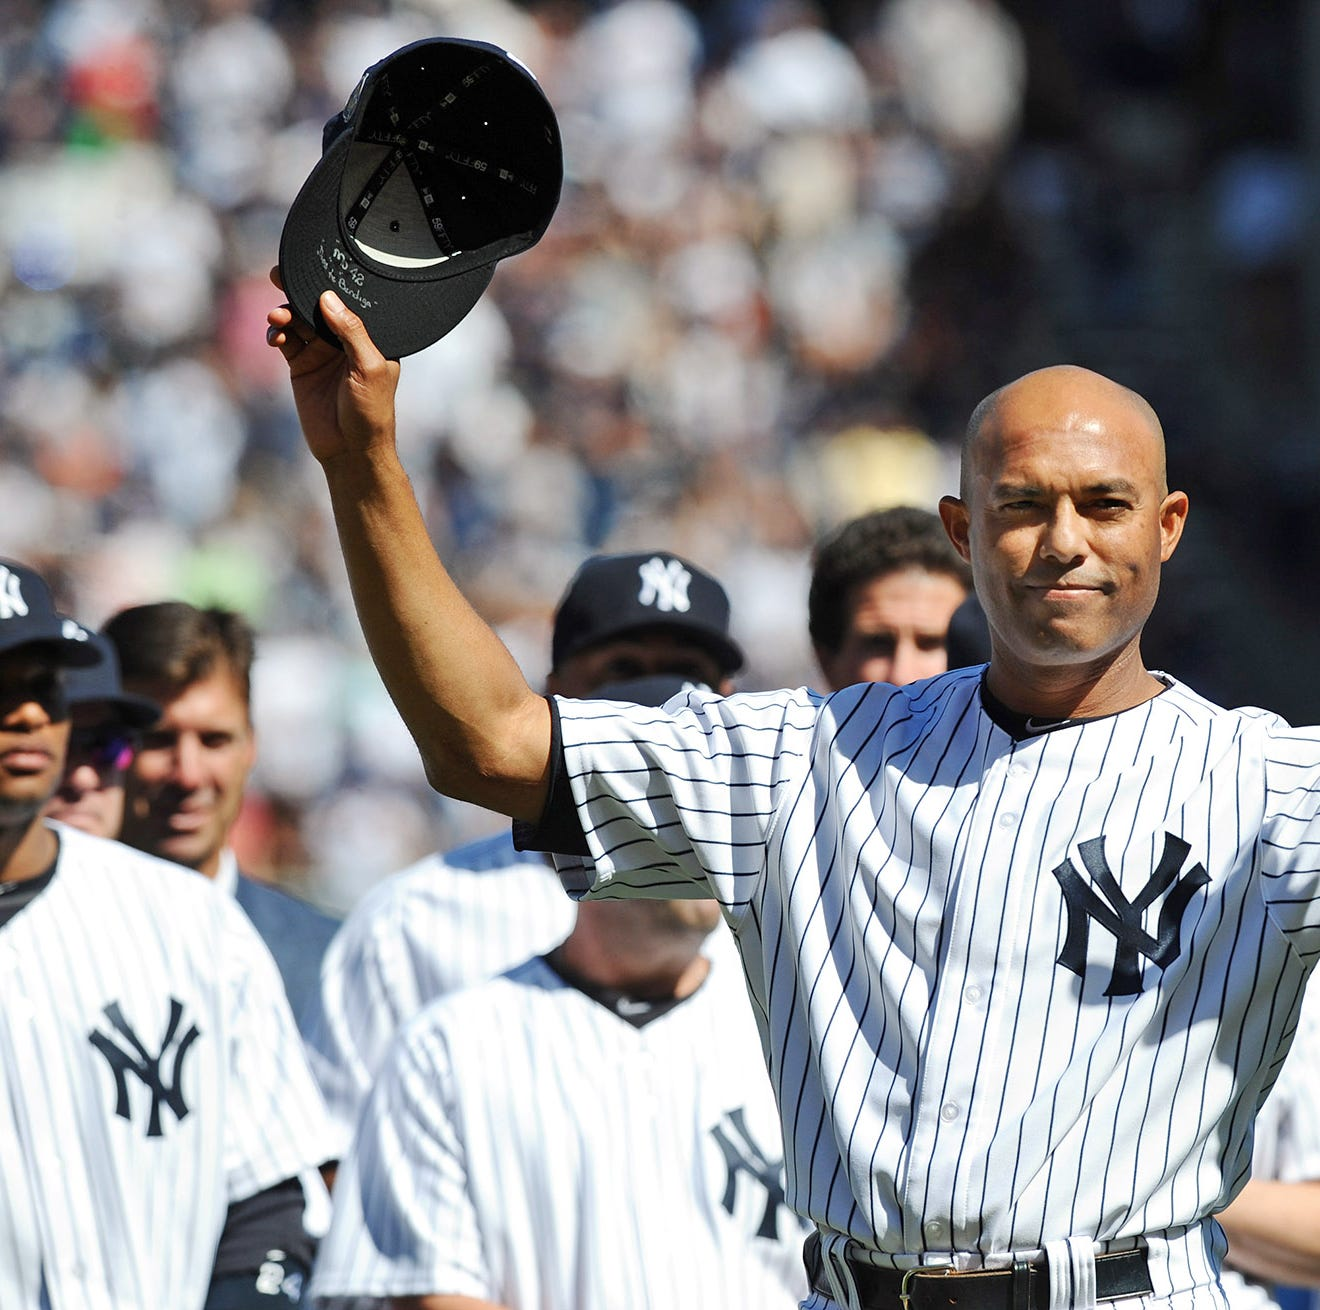 Mariano Rivera becomes first unanimous Baseball Hall of Fame selection